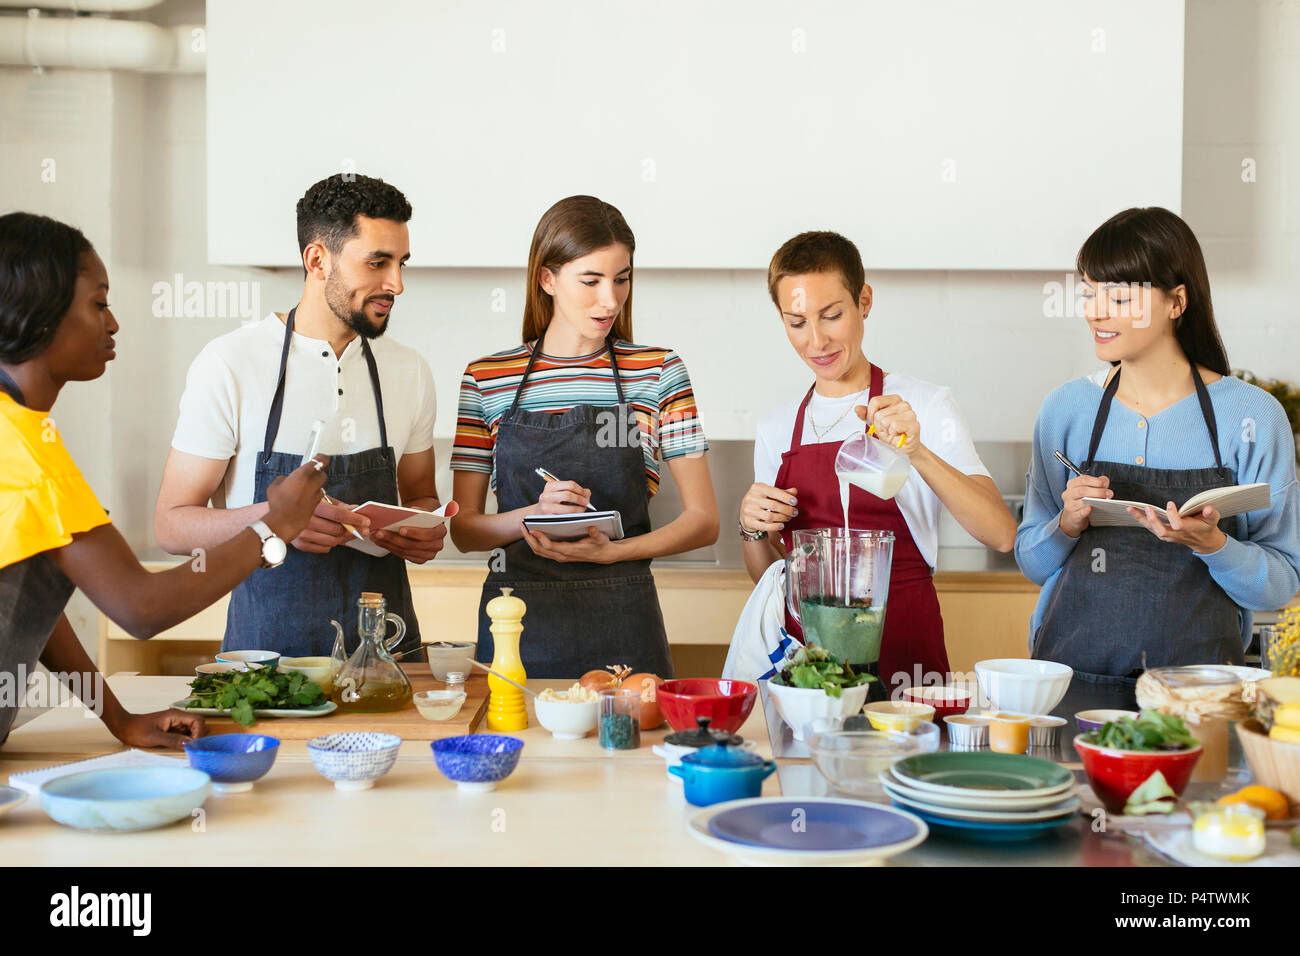 Friends and instructor in a cooking workshop preparing a smoothie - Stock Image